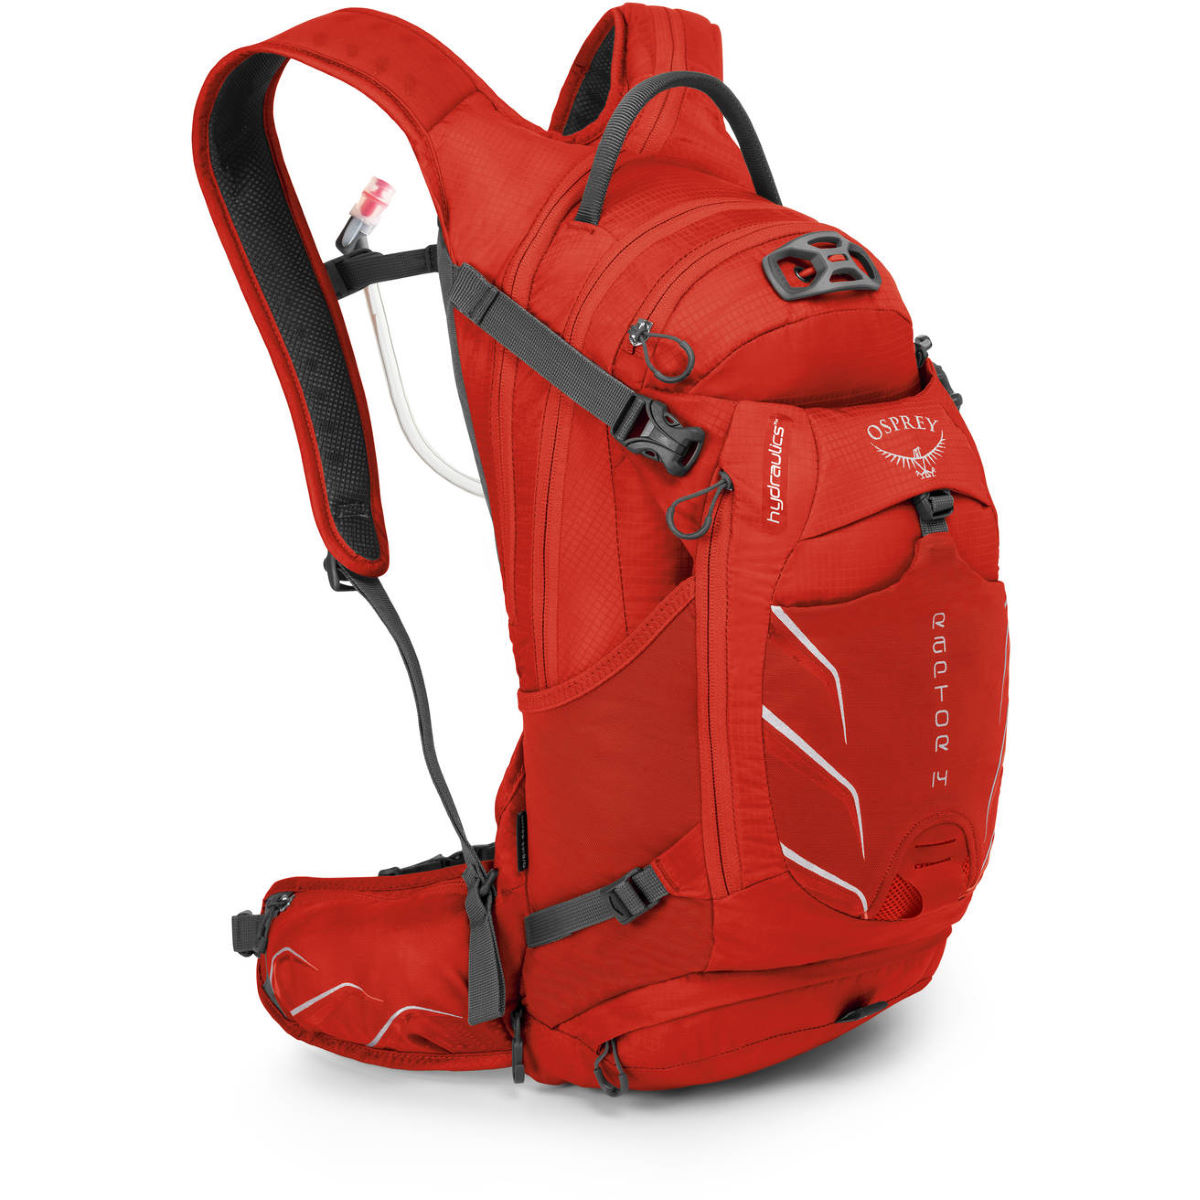 Sac d'hydratation Osprey Raptor 14 - Taille unique Rouge